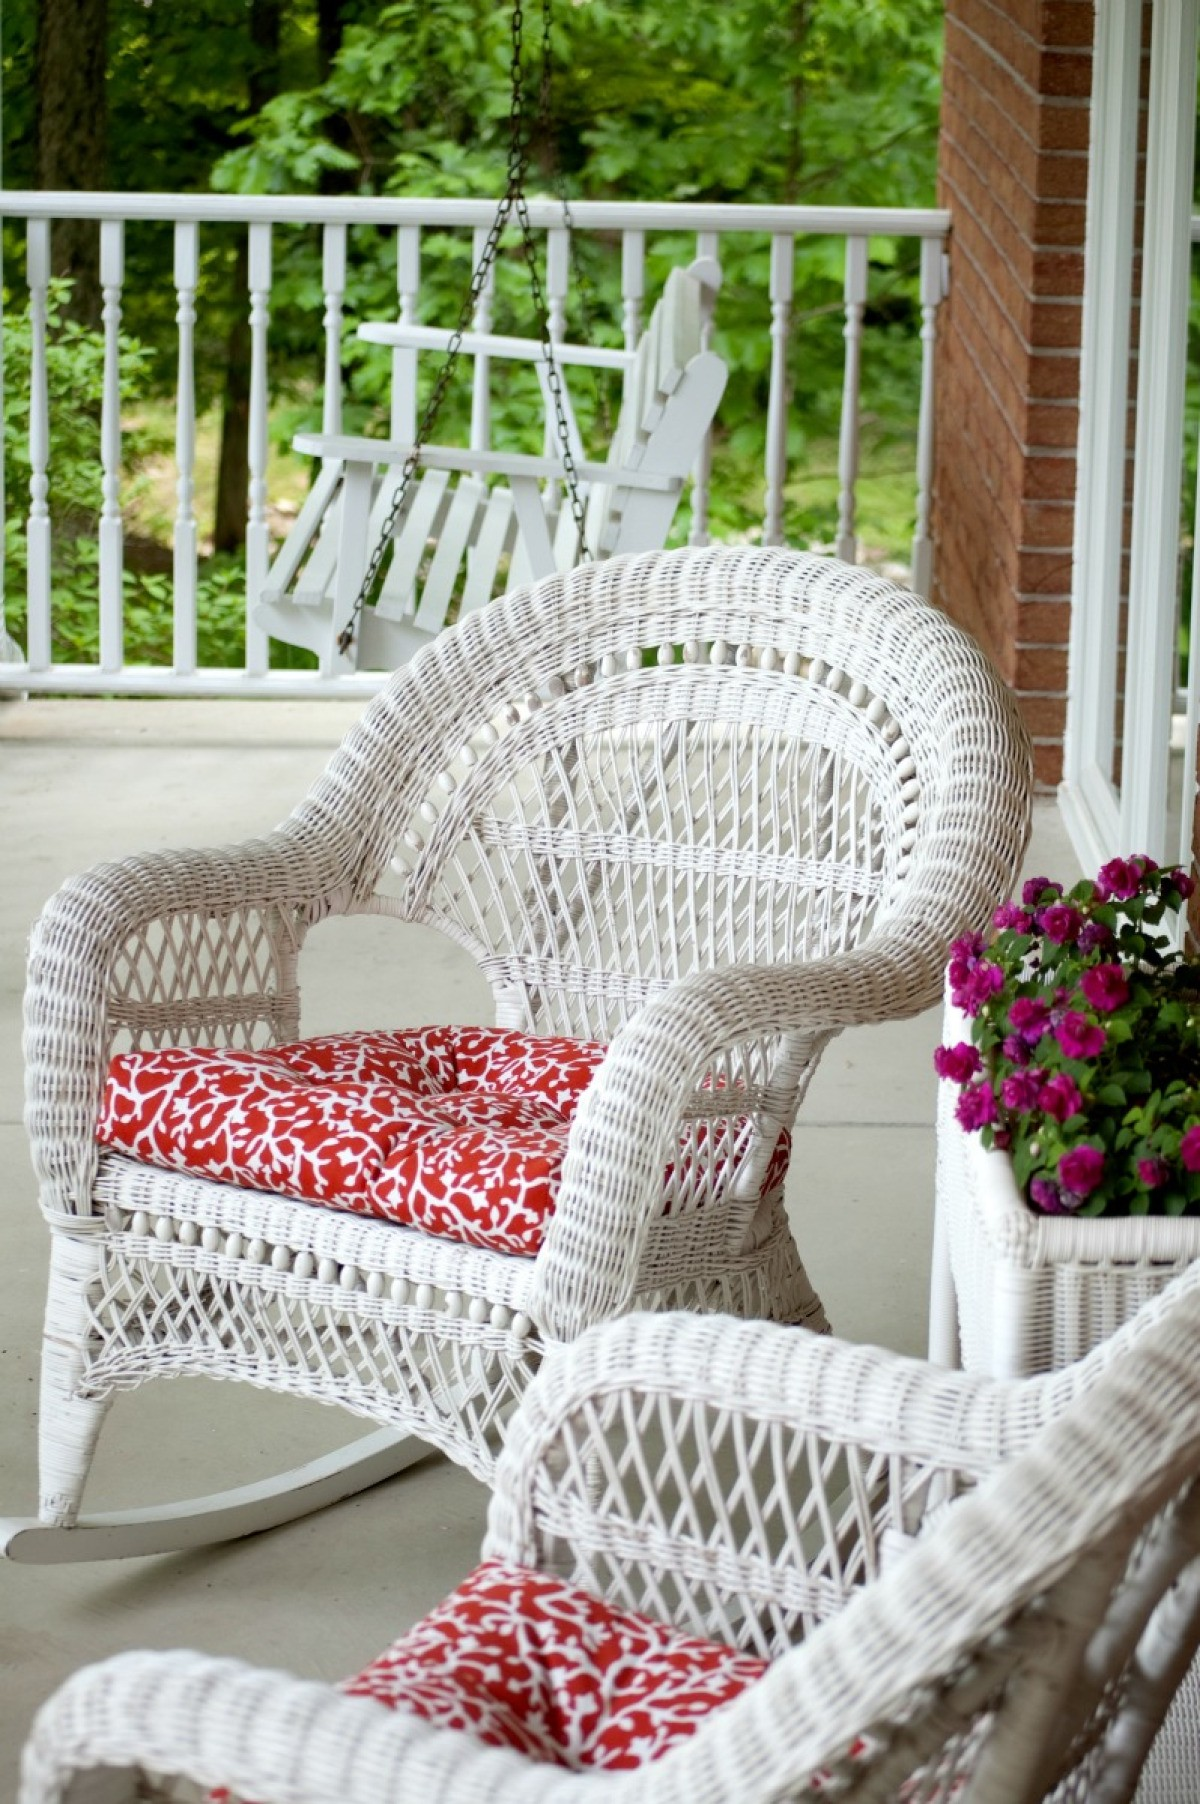 Outdoor Wicker Style Chairs With Fabric Covered Seat Cushions